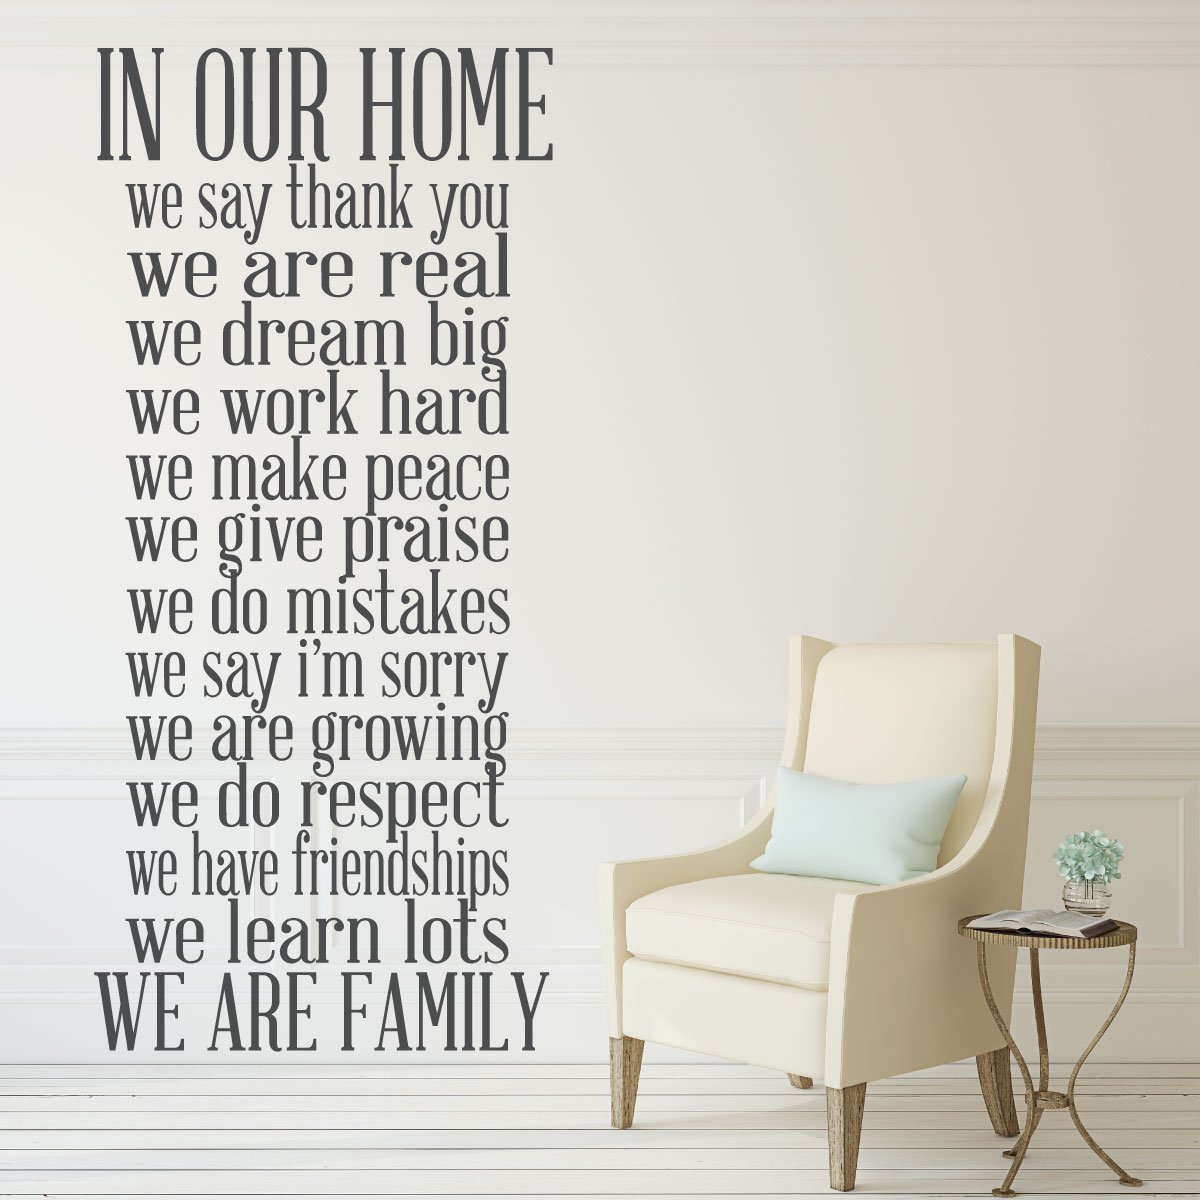 Family Wall Decor - In Our Home We Say Thank You, We Are Real, We Dream Big